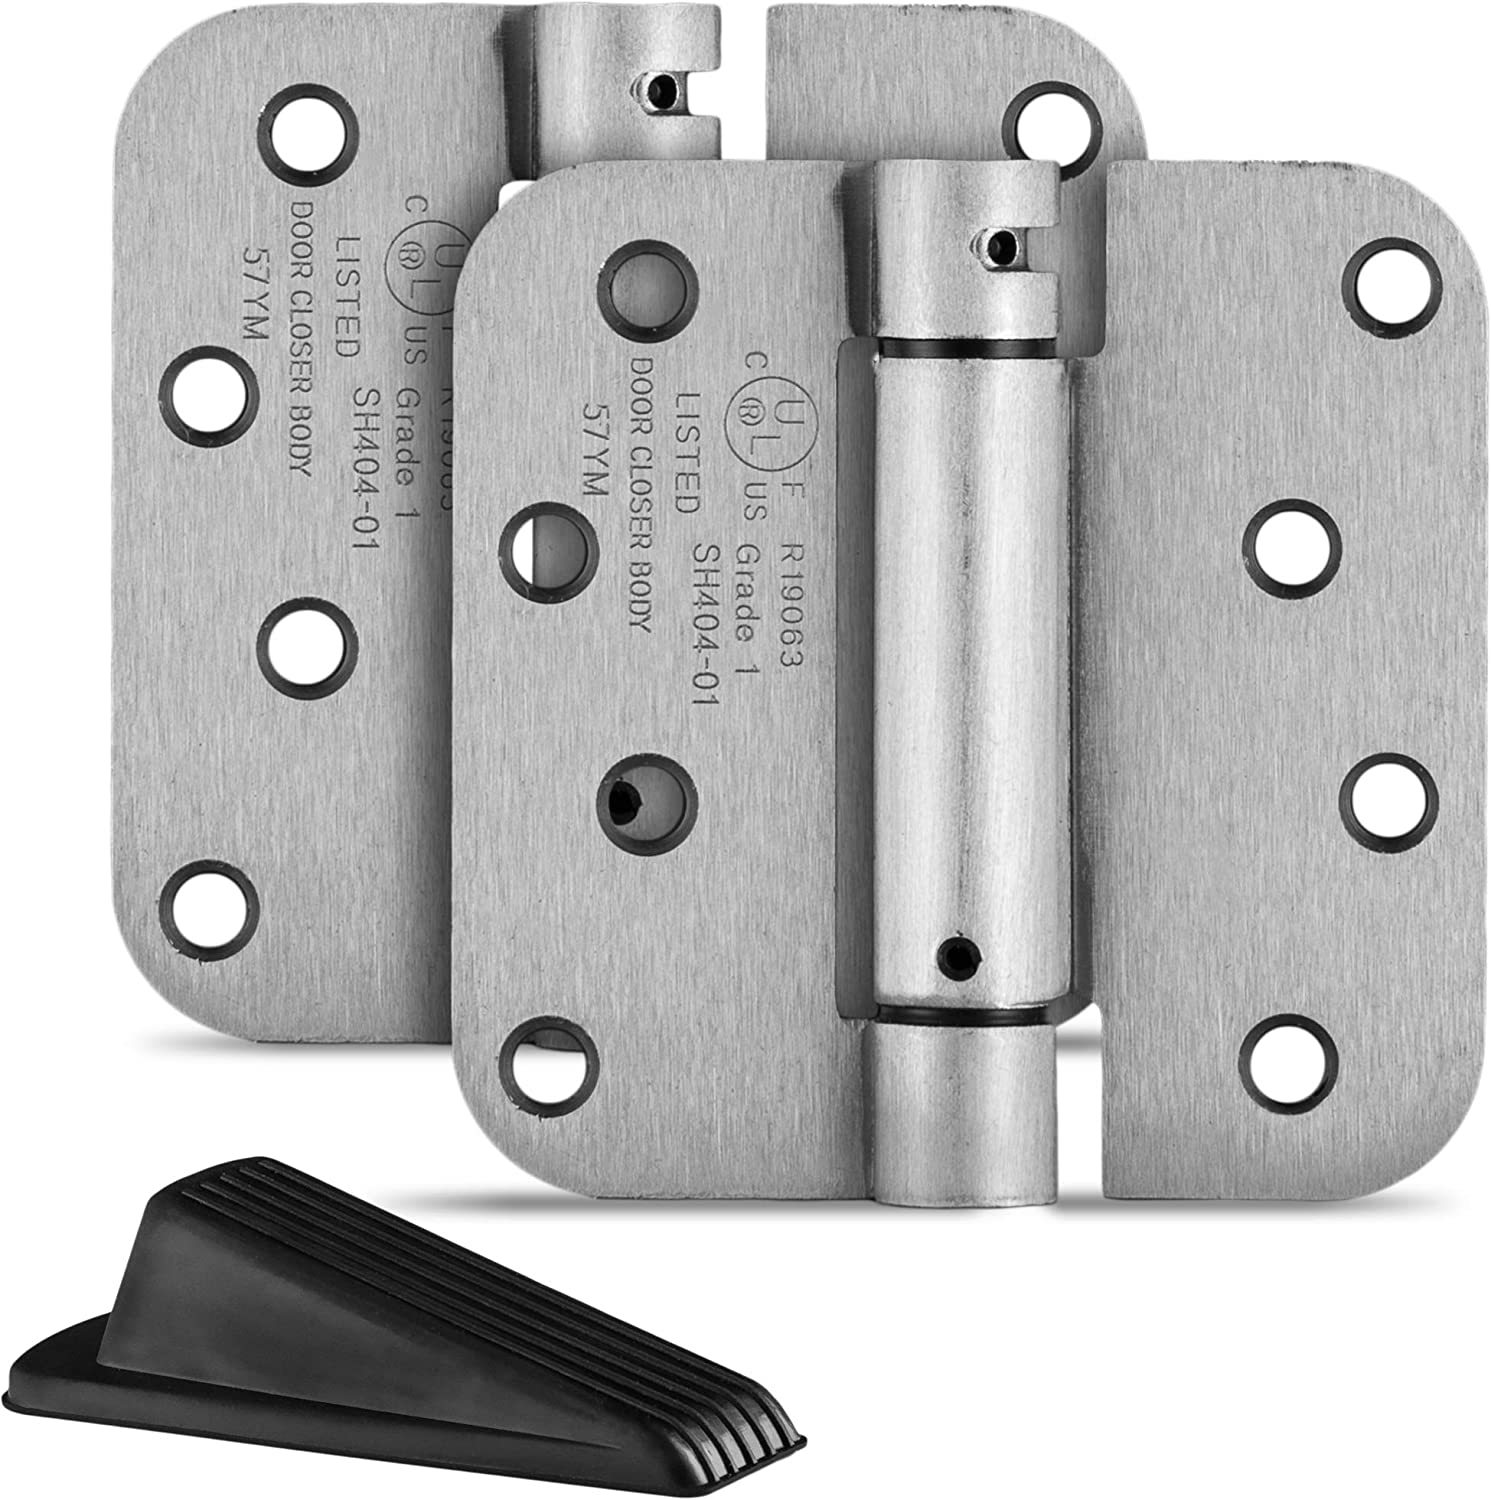 Satin Nickel Finish Self Closing Pack of 4 Hinges Item Includes Rubber Wedge Door Stopper Berlin Modisch 4 x 4 Mortise Spring Hinge with 5//8 Radius Corners